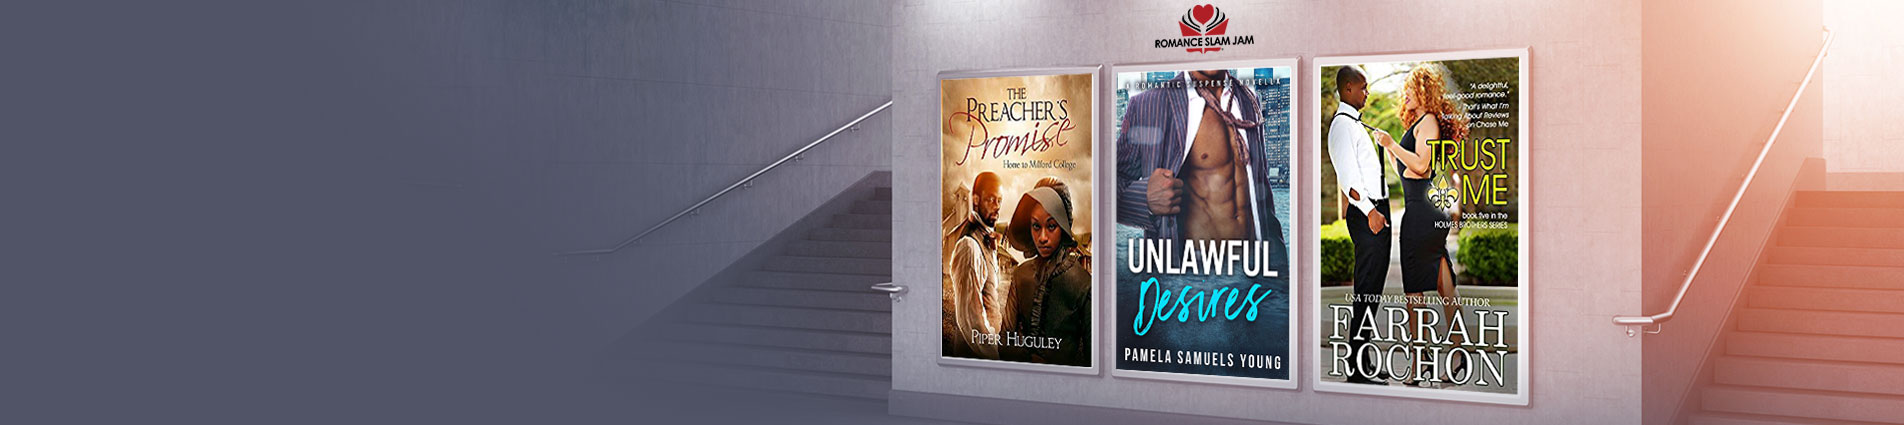 Romance Book Event + Featured Authors: Farrah Rochon, Pamela Samuels Youngs and Piper Huguley + Spotlight: African American Authors